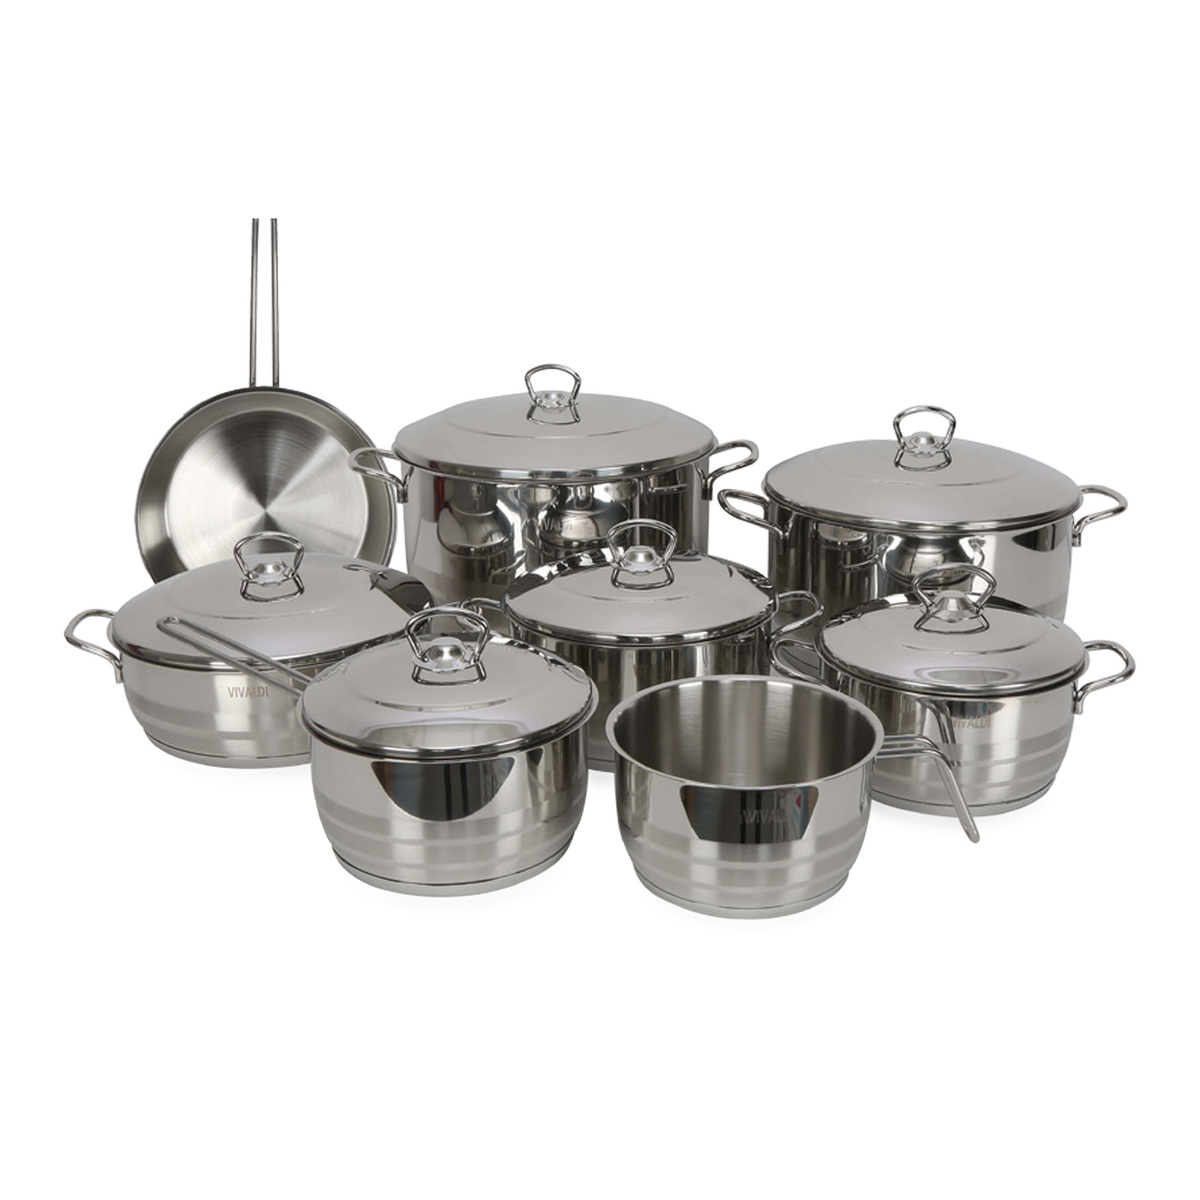 Vivaldi Stainless Steel Cookware Set 14pcs 0725